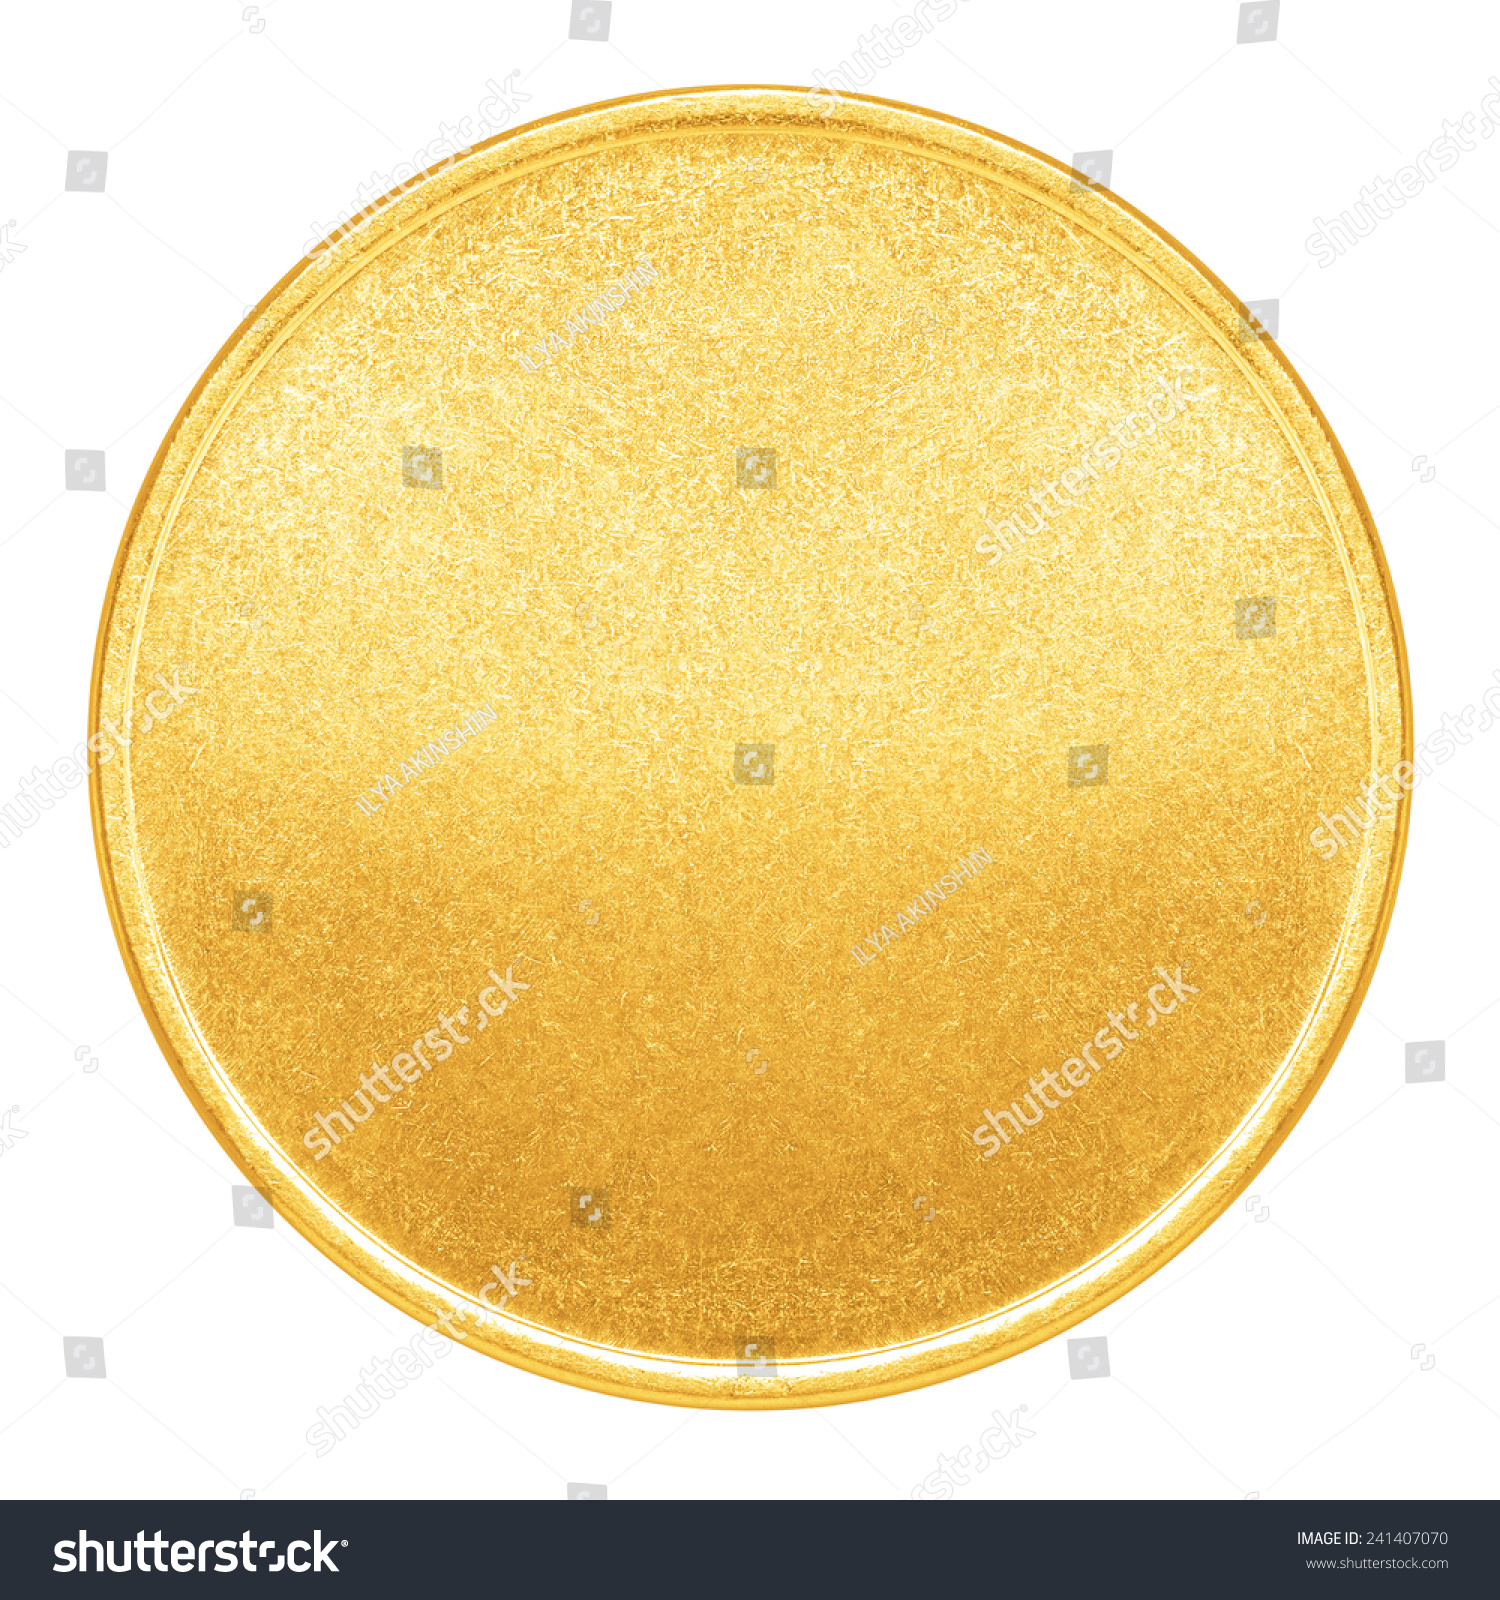 graphic about Gold Coin Template Printable called Golden coin task software templates / Dent coin hitbtc 45